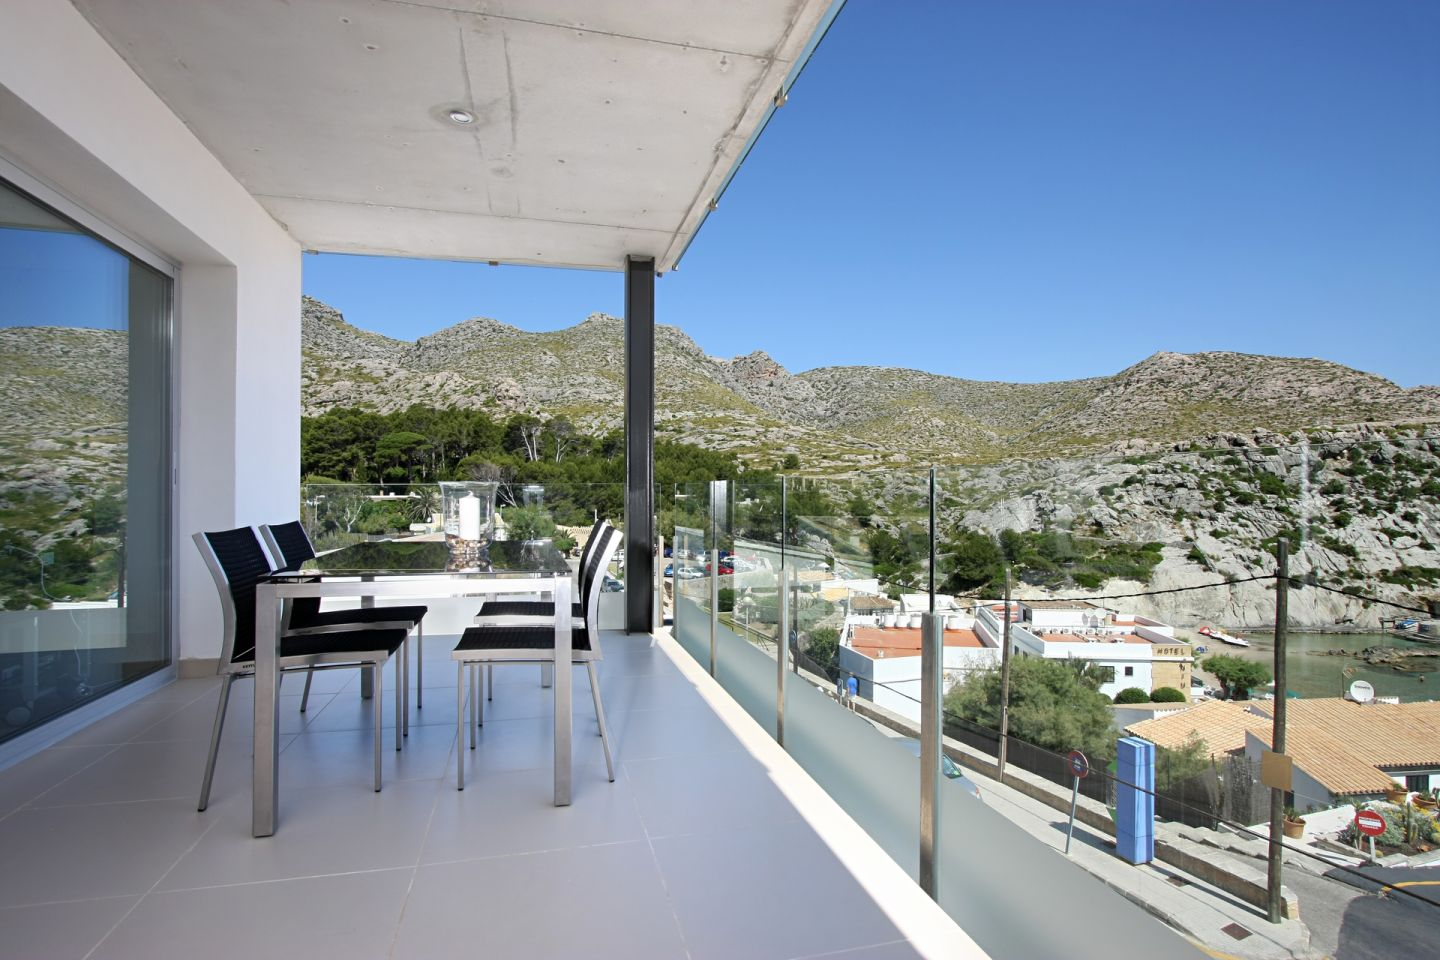 2 Bed Building for sale in Cala San Vicente 13